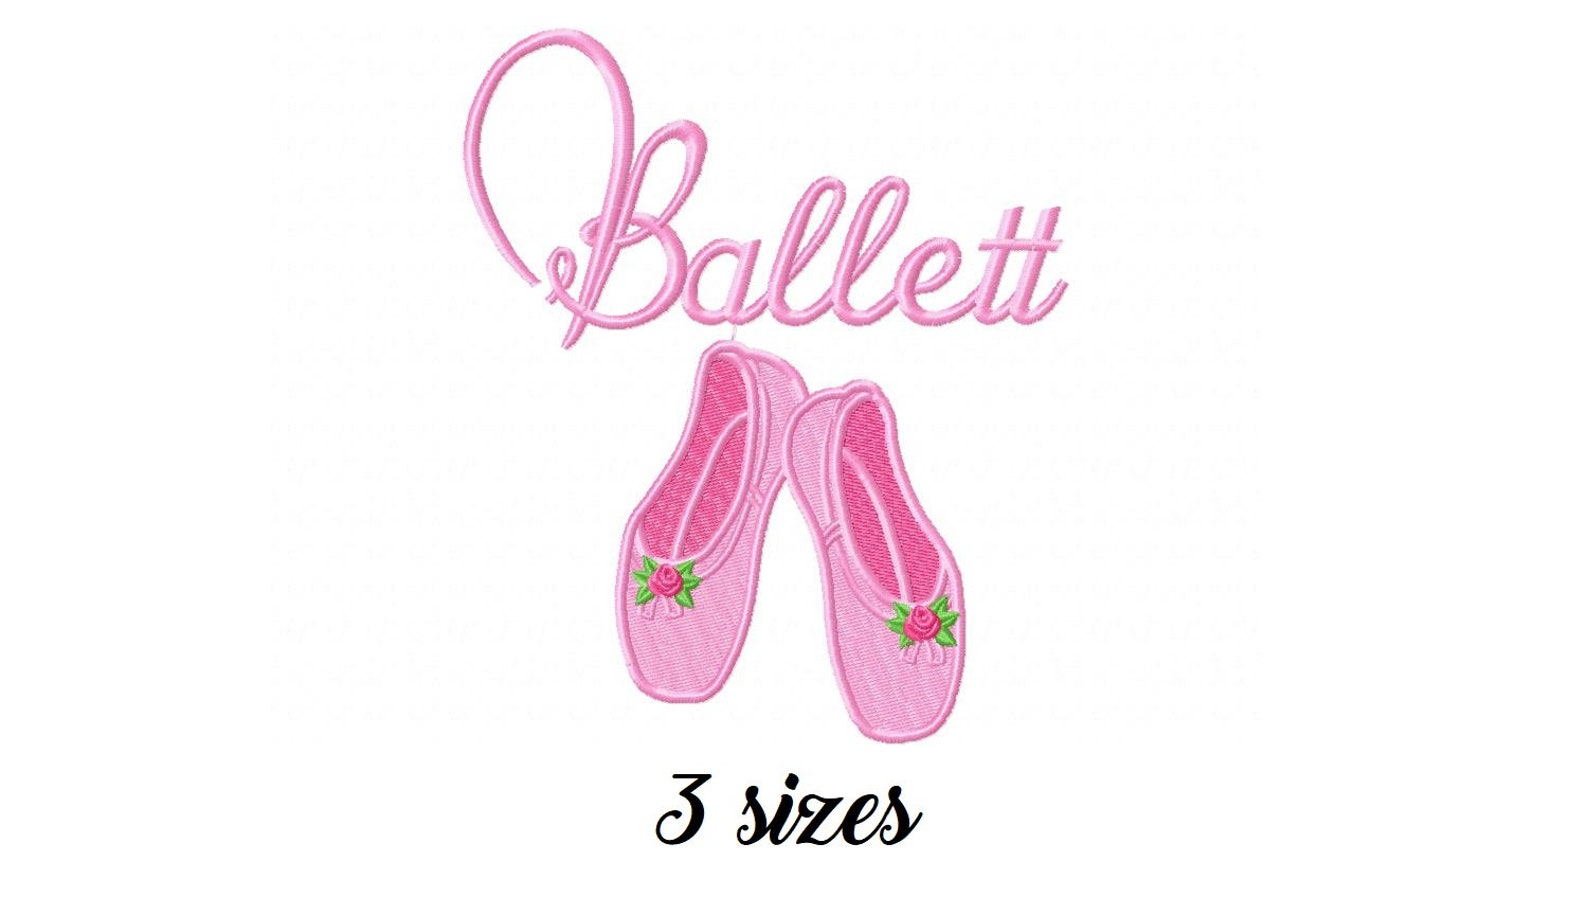 one free! ballet shoes filled machine embroidery design, embroidery girls, ballerina design, girl embroidery, embroidery balleri